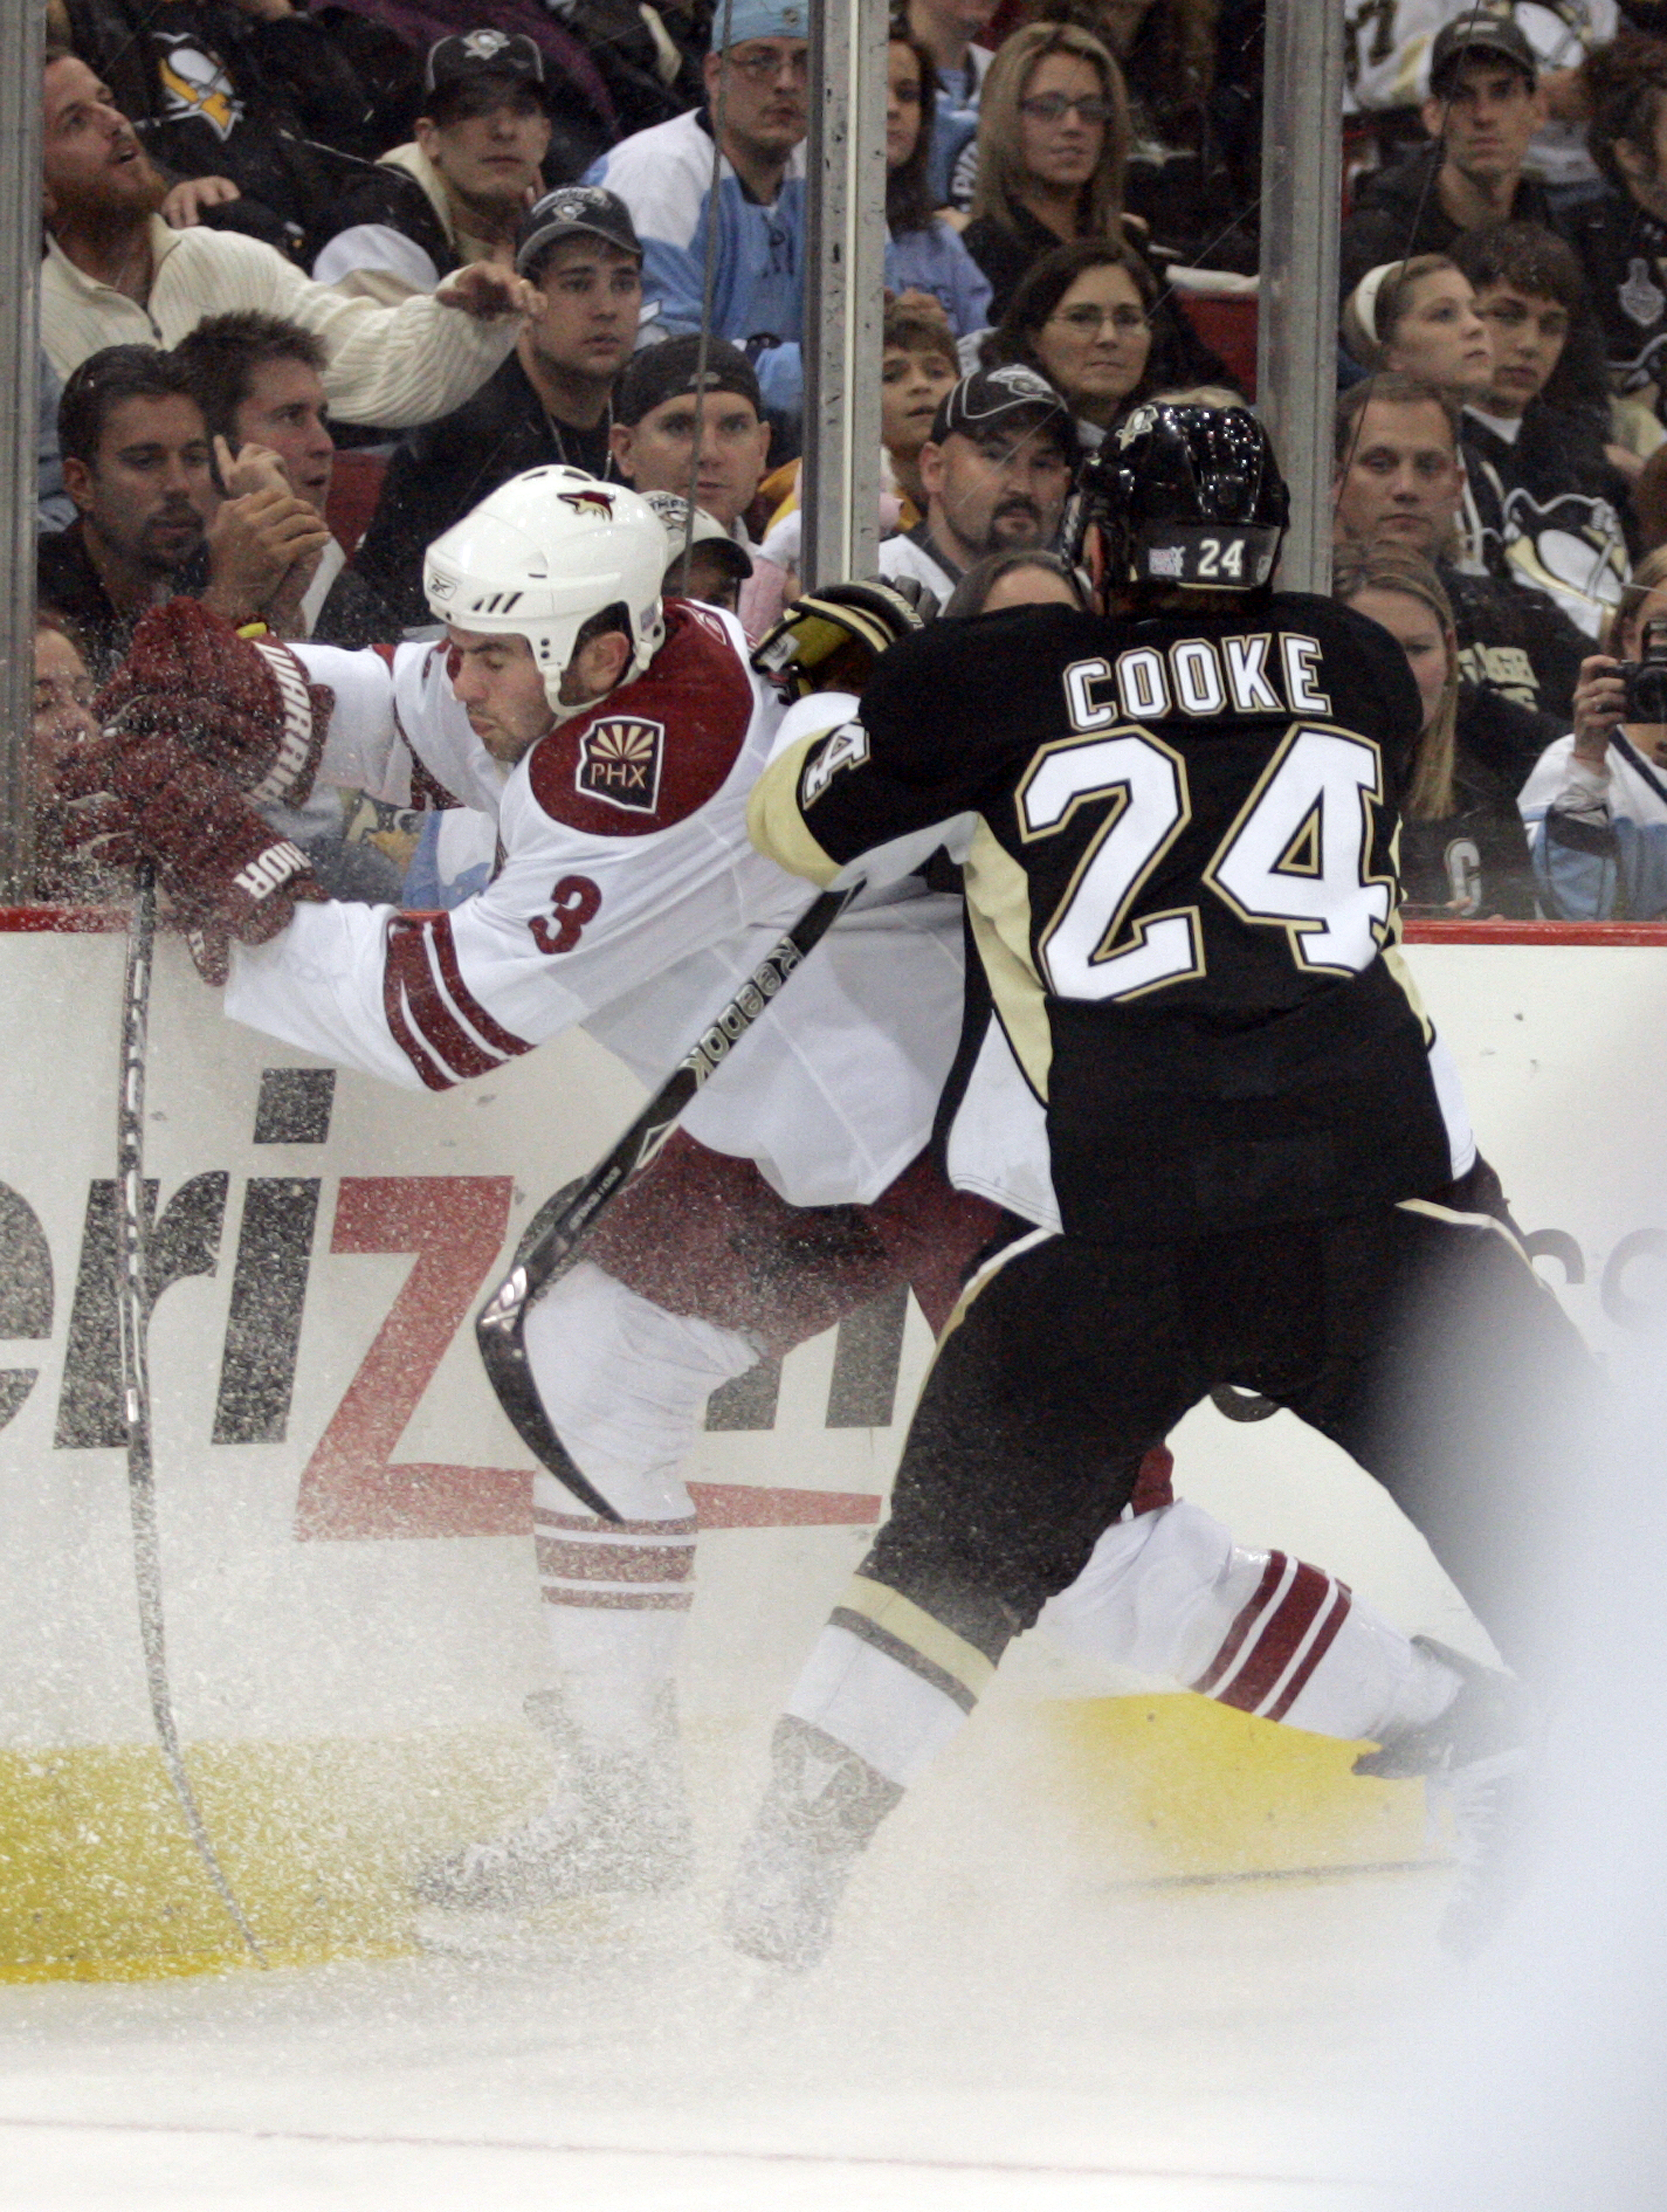 PITTSBURGH, PA - OCTOBER 07:  Matt Cooke #24 of the Pittsburgh Penguins checks Keith Yandle #3 of the Phoenix Coyotes in the first period at Mellon Arena on October 07, 2009 in Pittsburgh, Pennsylvania.  (Photo by Justin K. Aller/Getty Images)